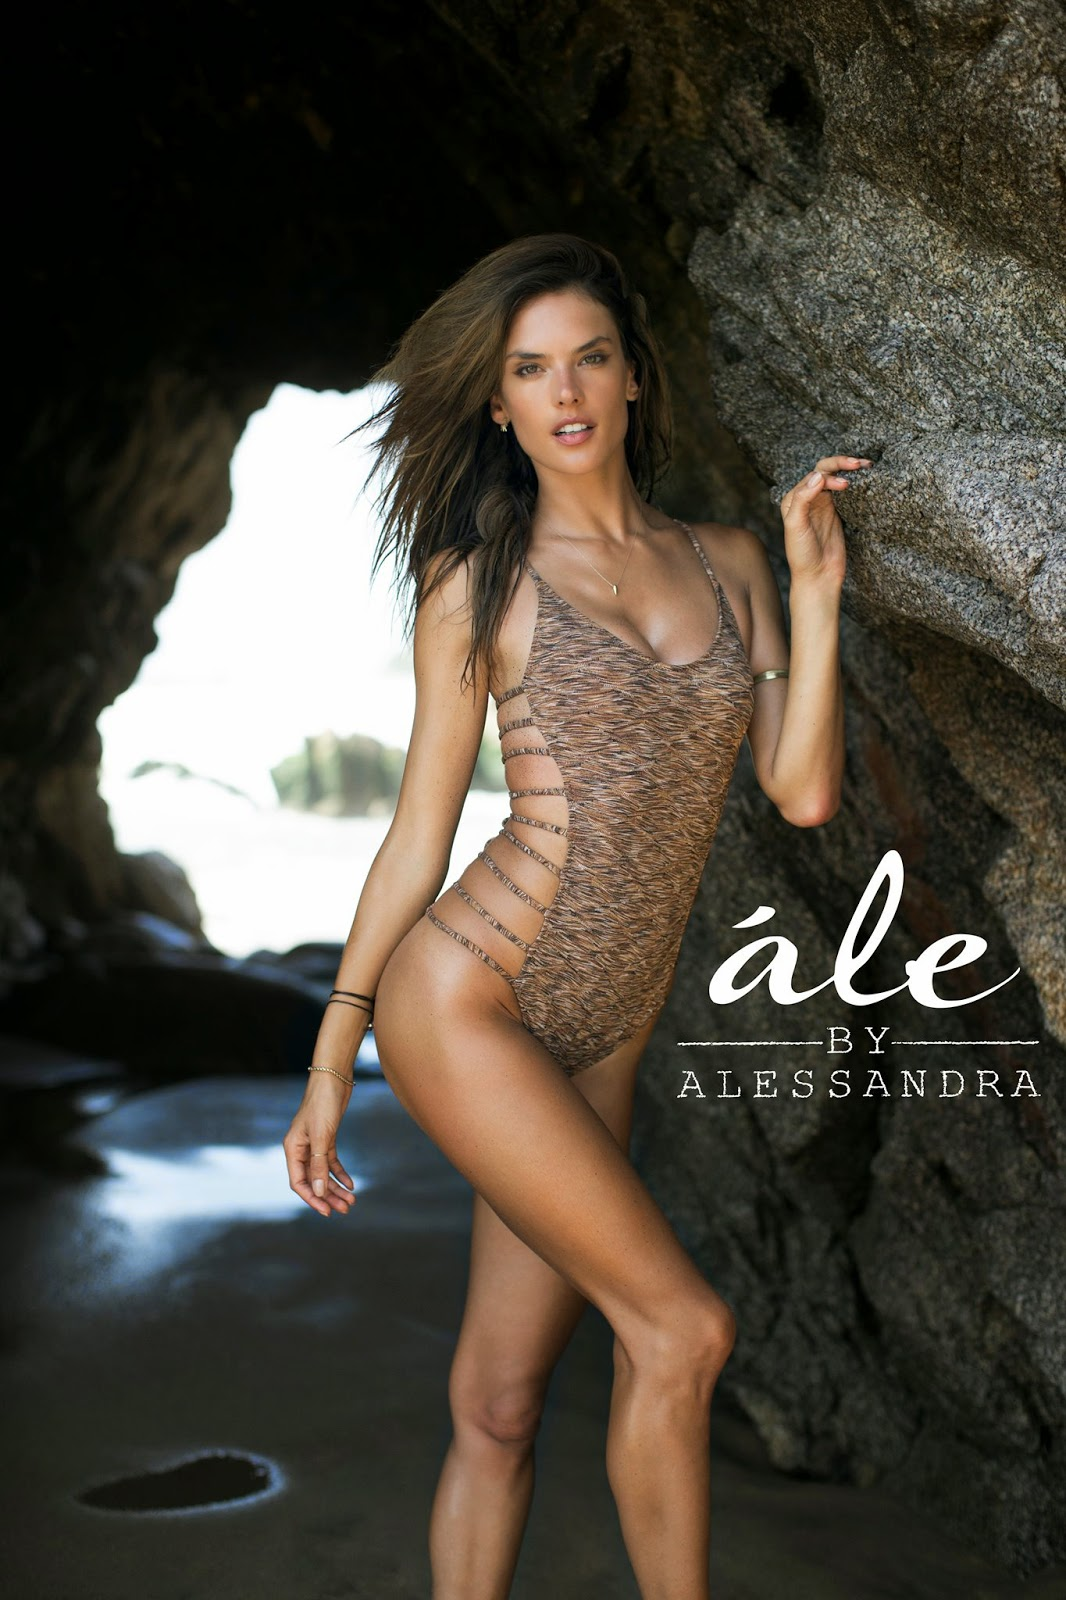 Alessandra Ambrosio ale by Alessandra Advertisement 2014